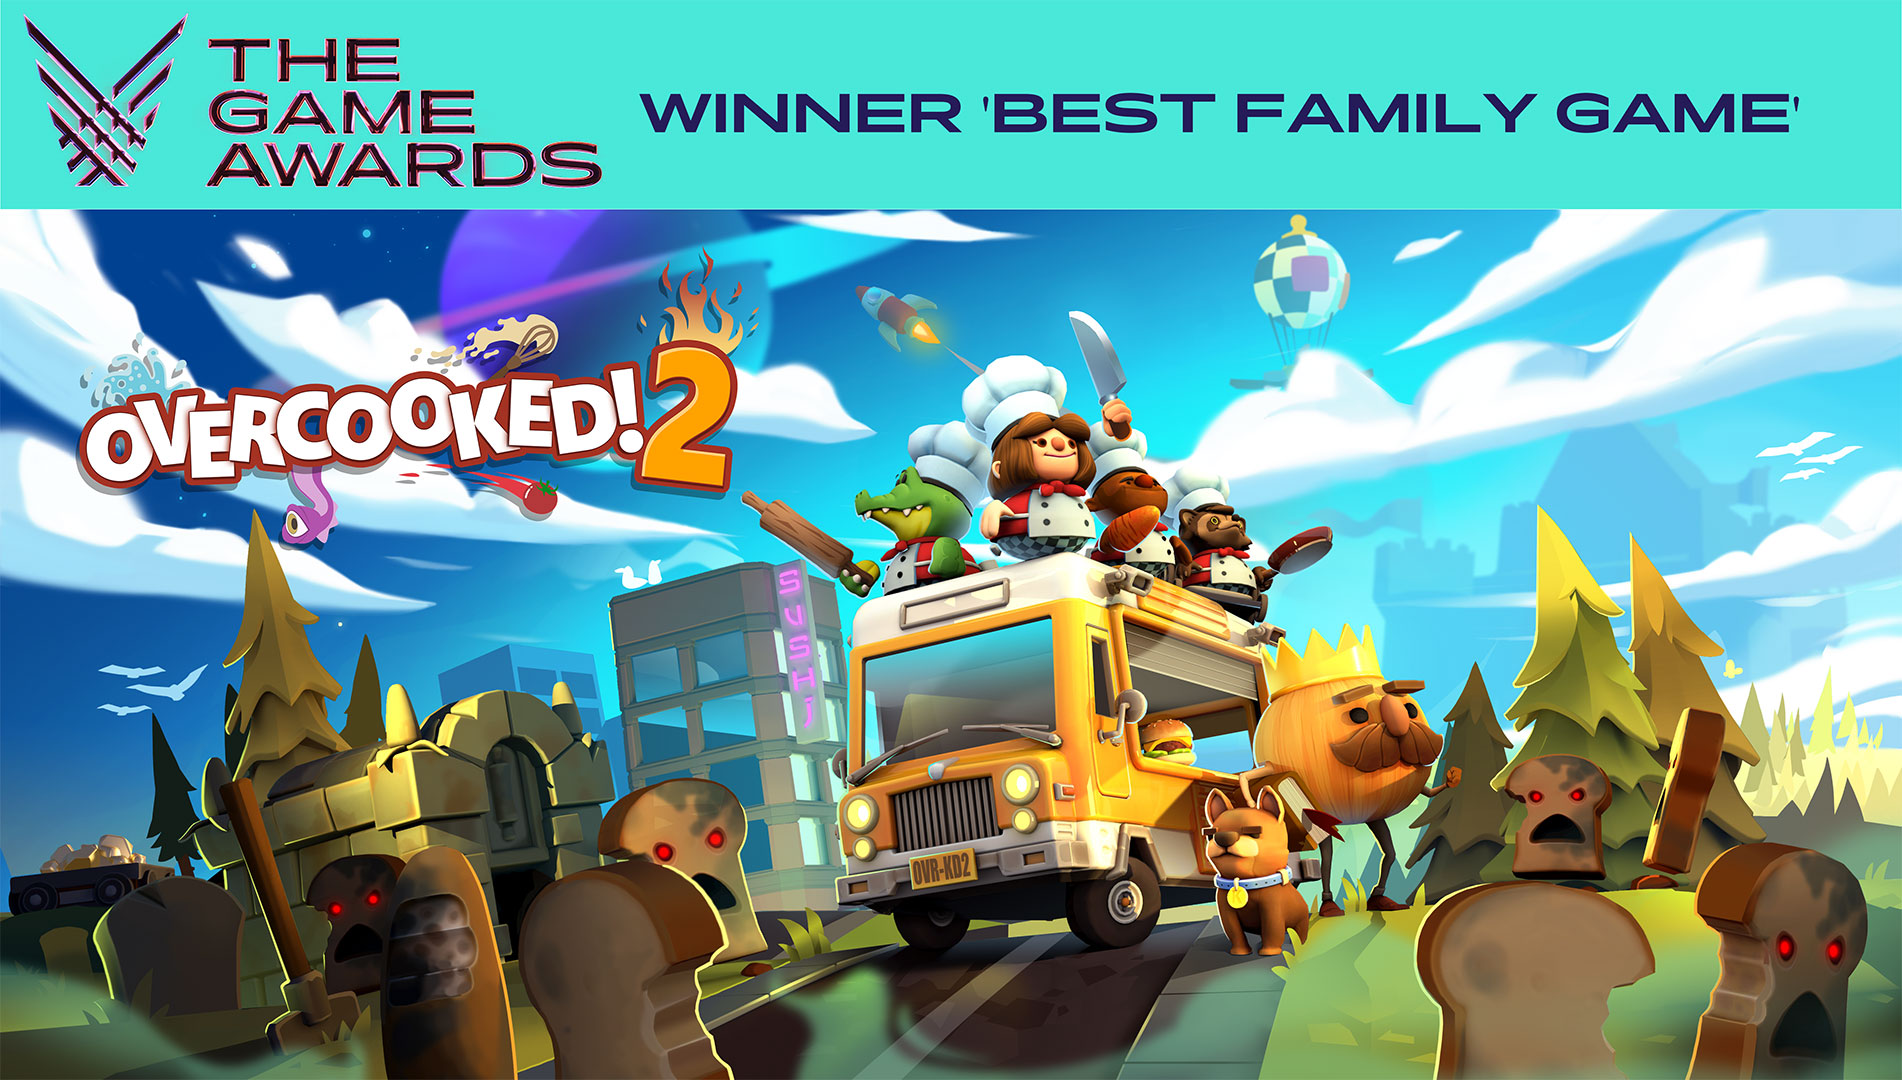 Overcooked! 2 Wins 'Best Family Game' at The Game Awards